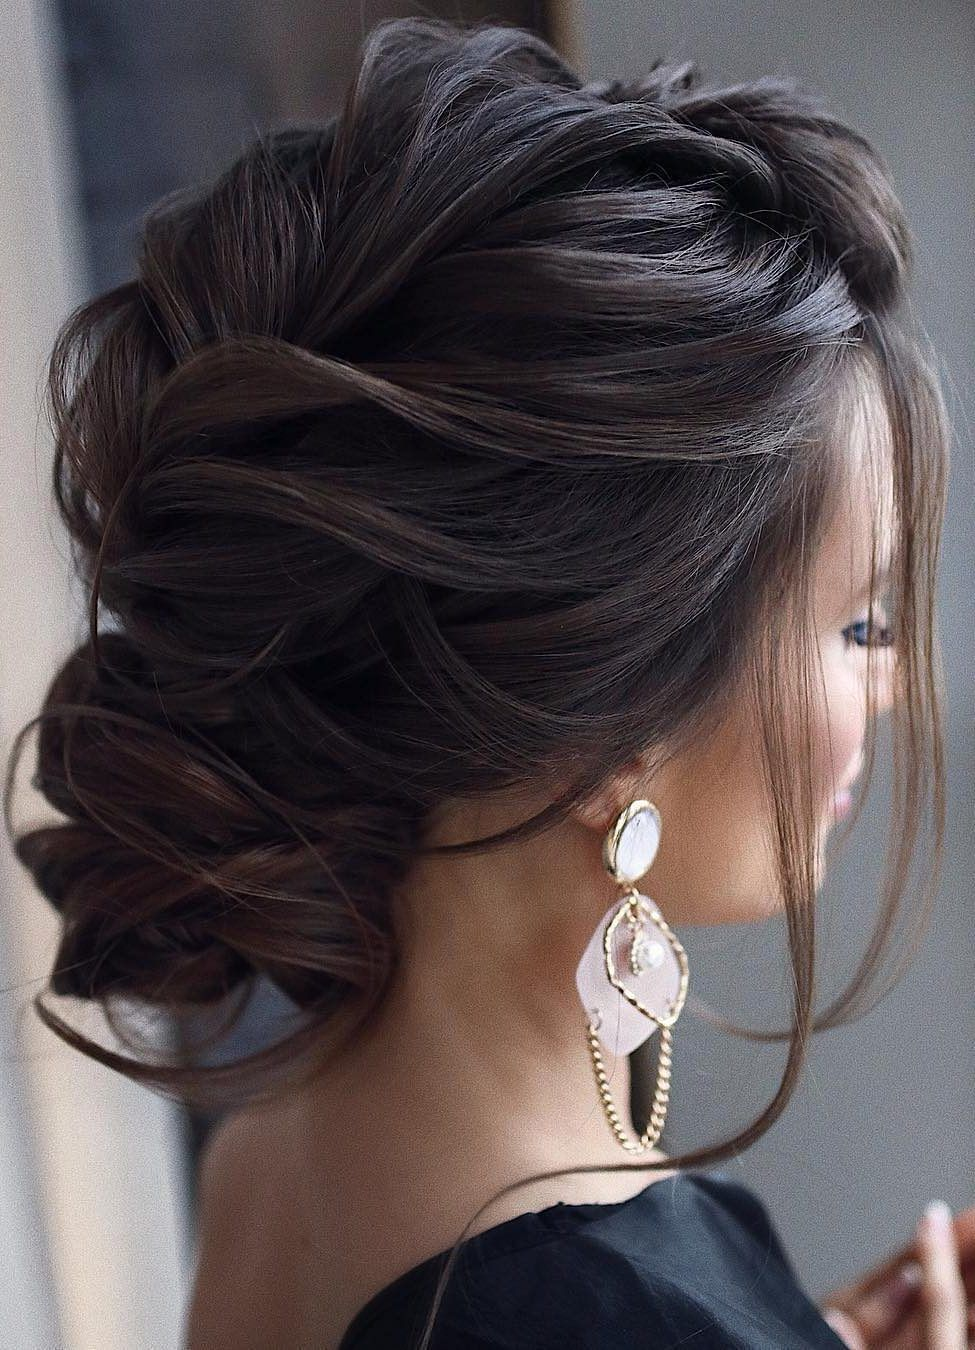 The Best And Most Loved Bridal Hairstyles 2019 - Page 14 of 34 #bridalhair